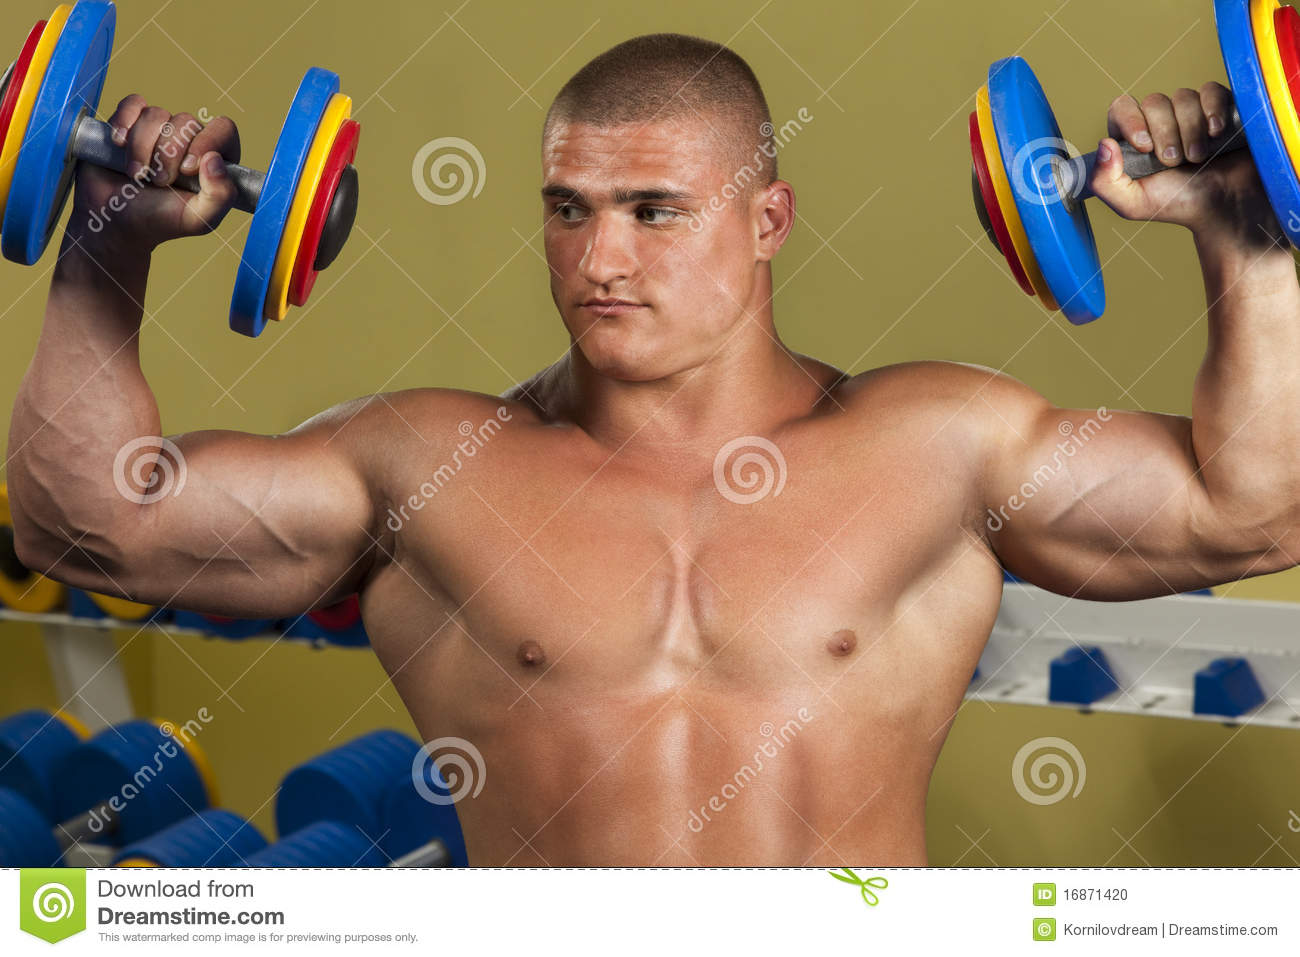 Muscular Man Lifting Weights Stock Photo - Download Image